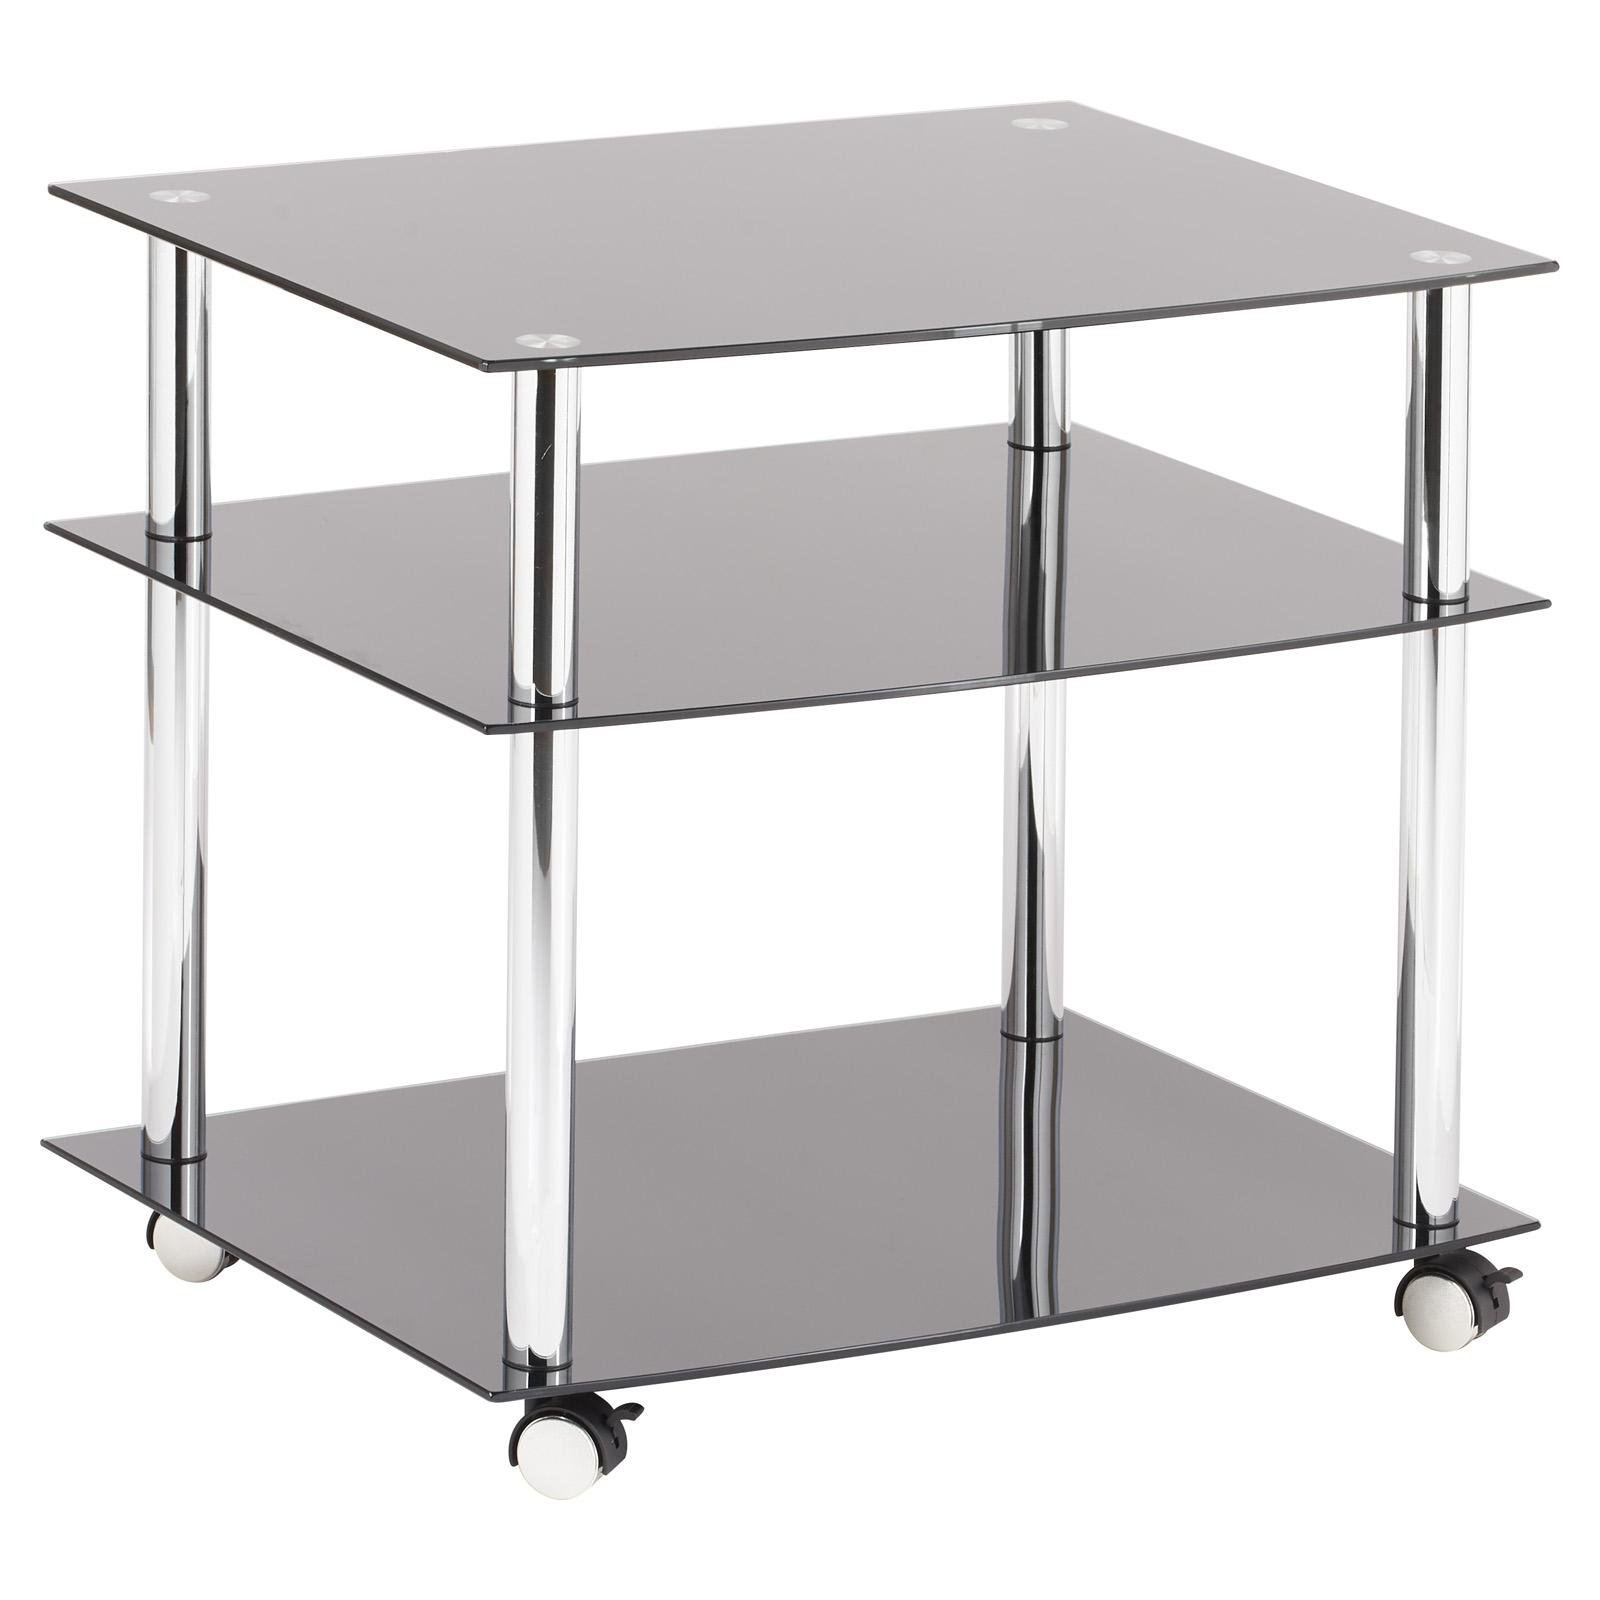 image-Hartleys Black Glass TV DVD Unit with Wheels - Mobile 3 Tier Trolley